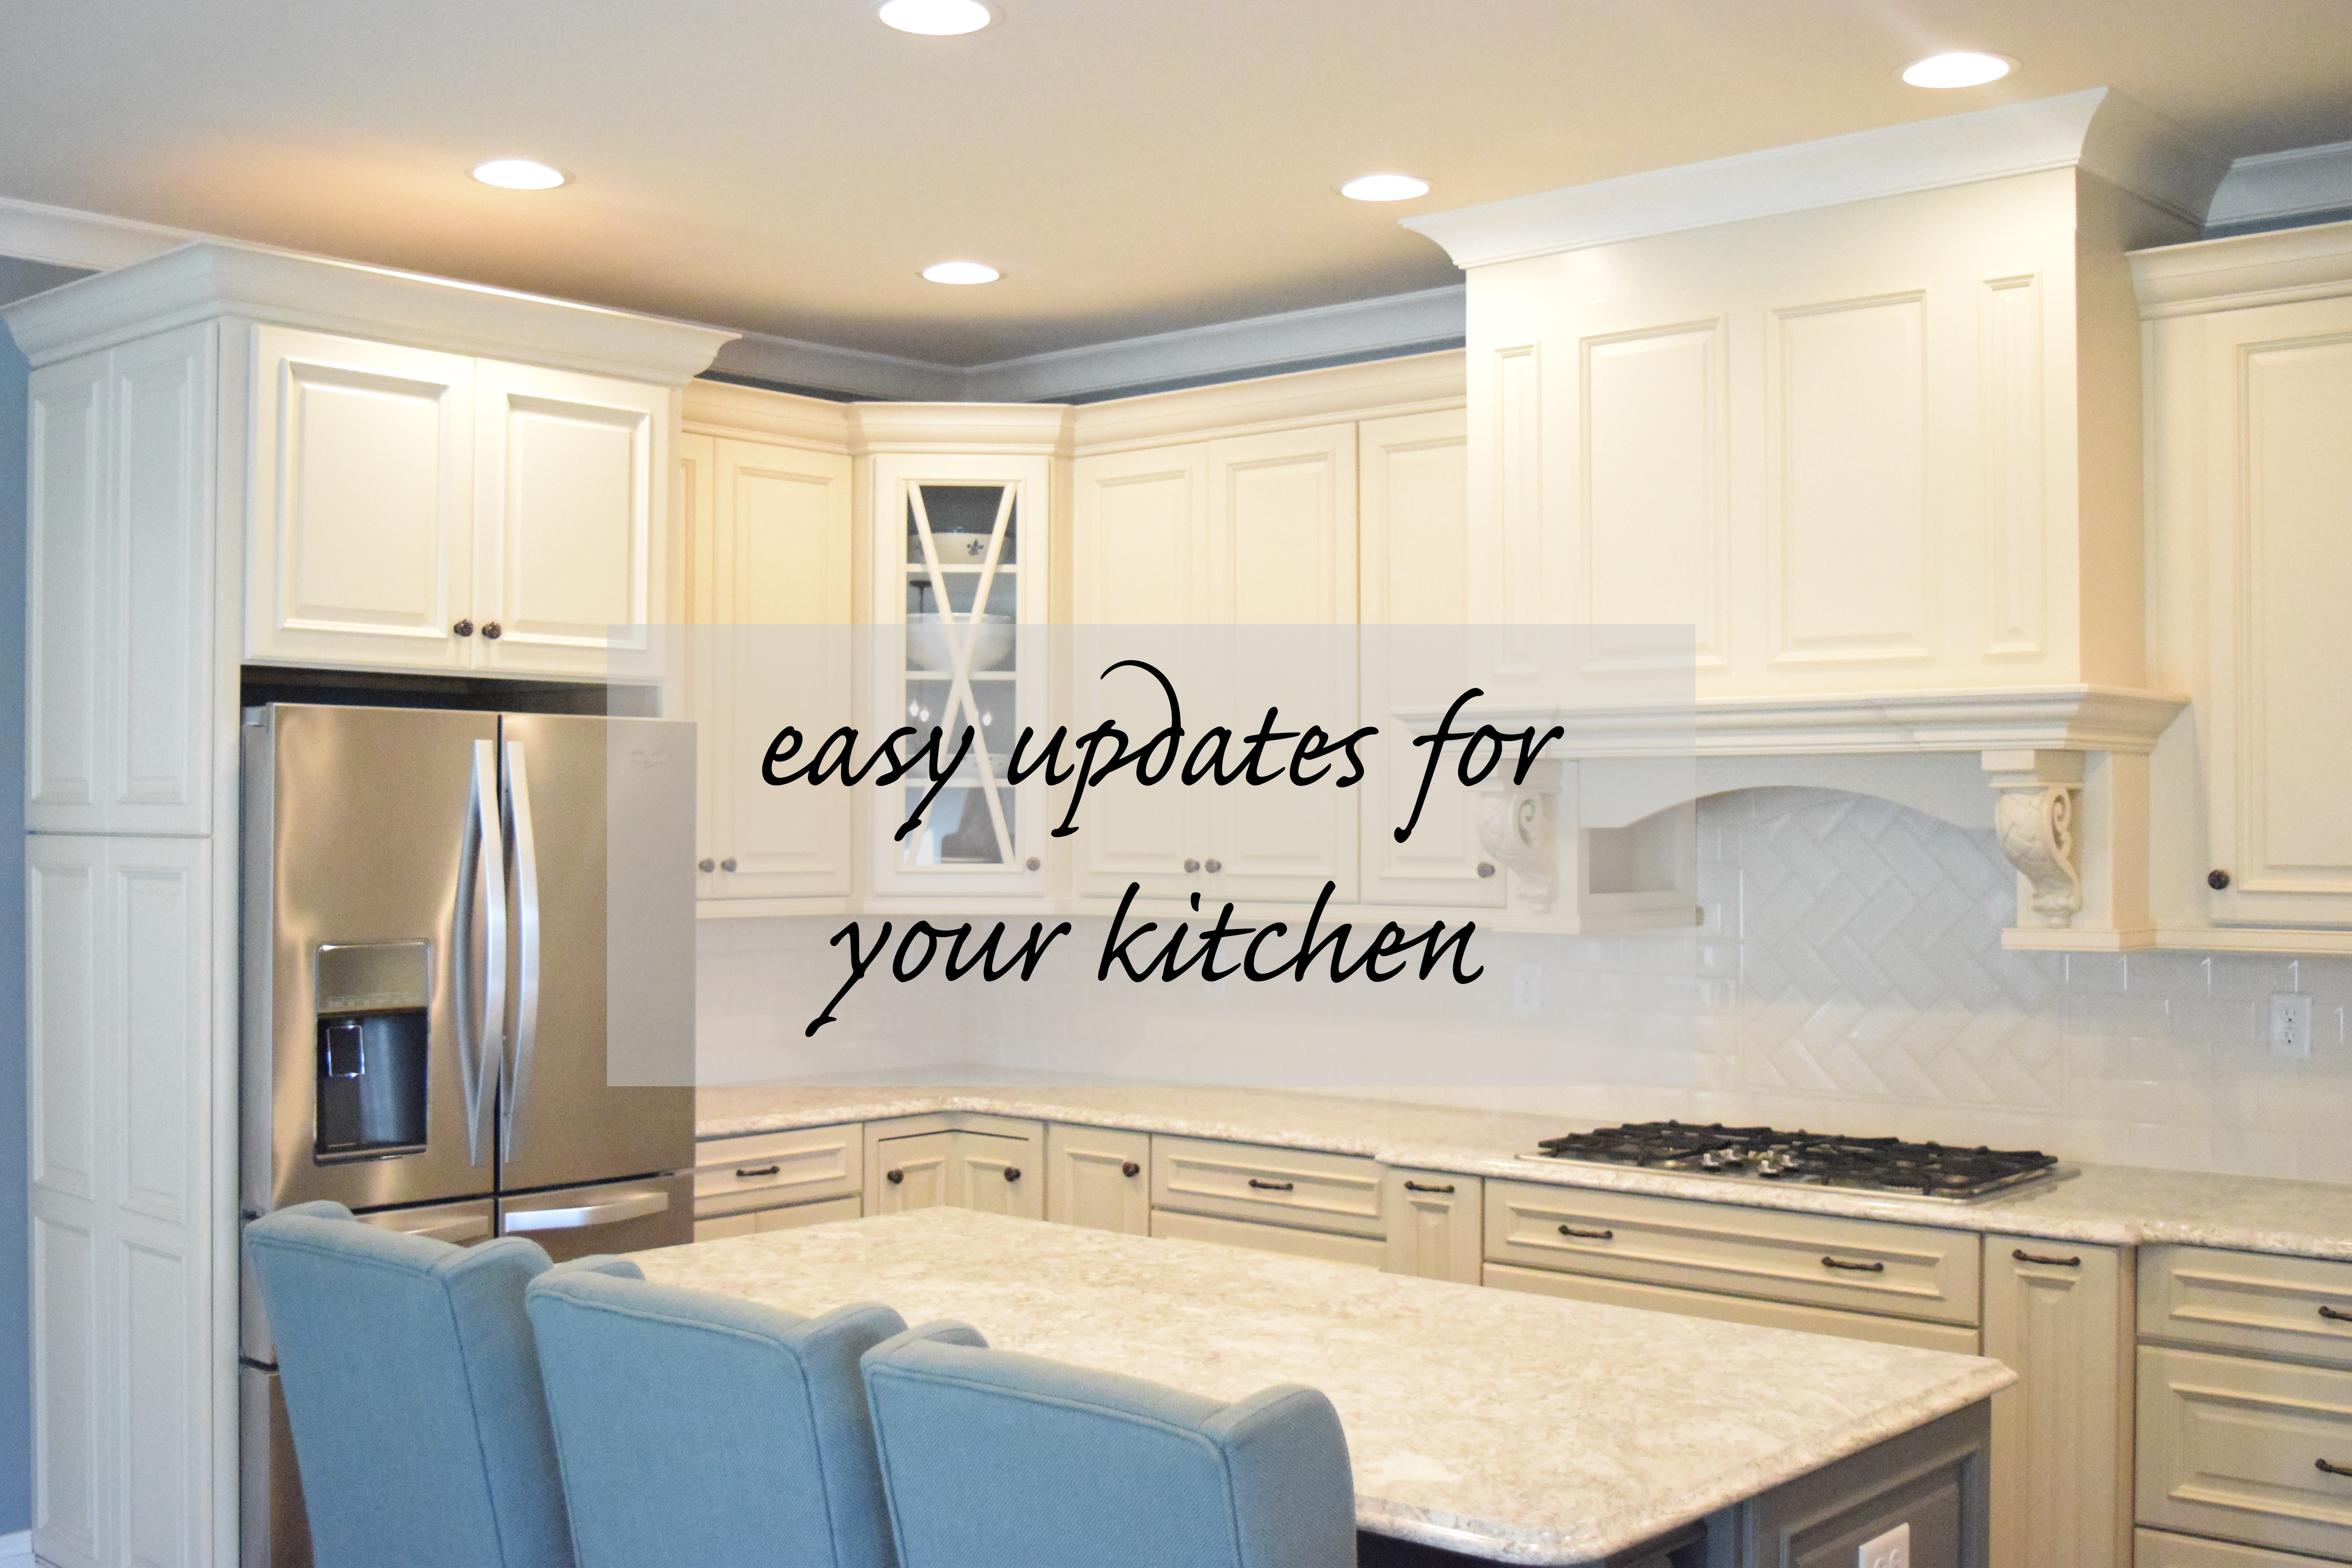 5 simple ways to update your kitchen - llds home store & design studio